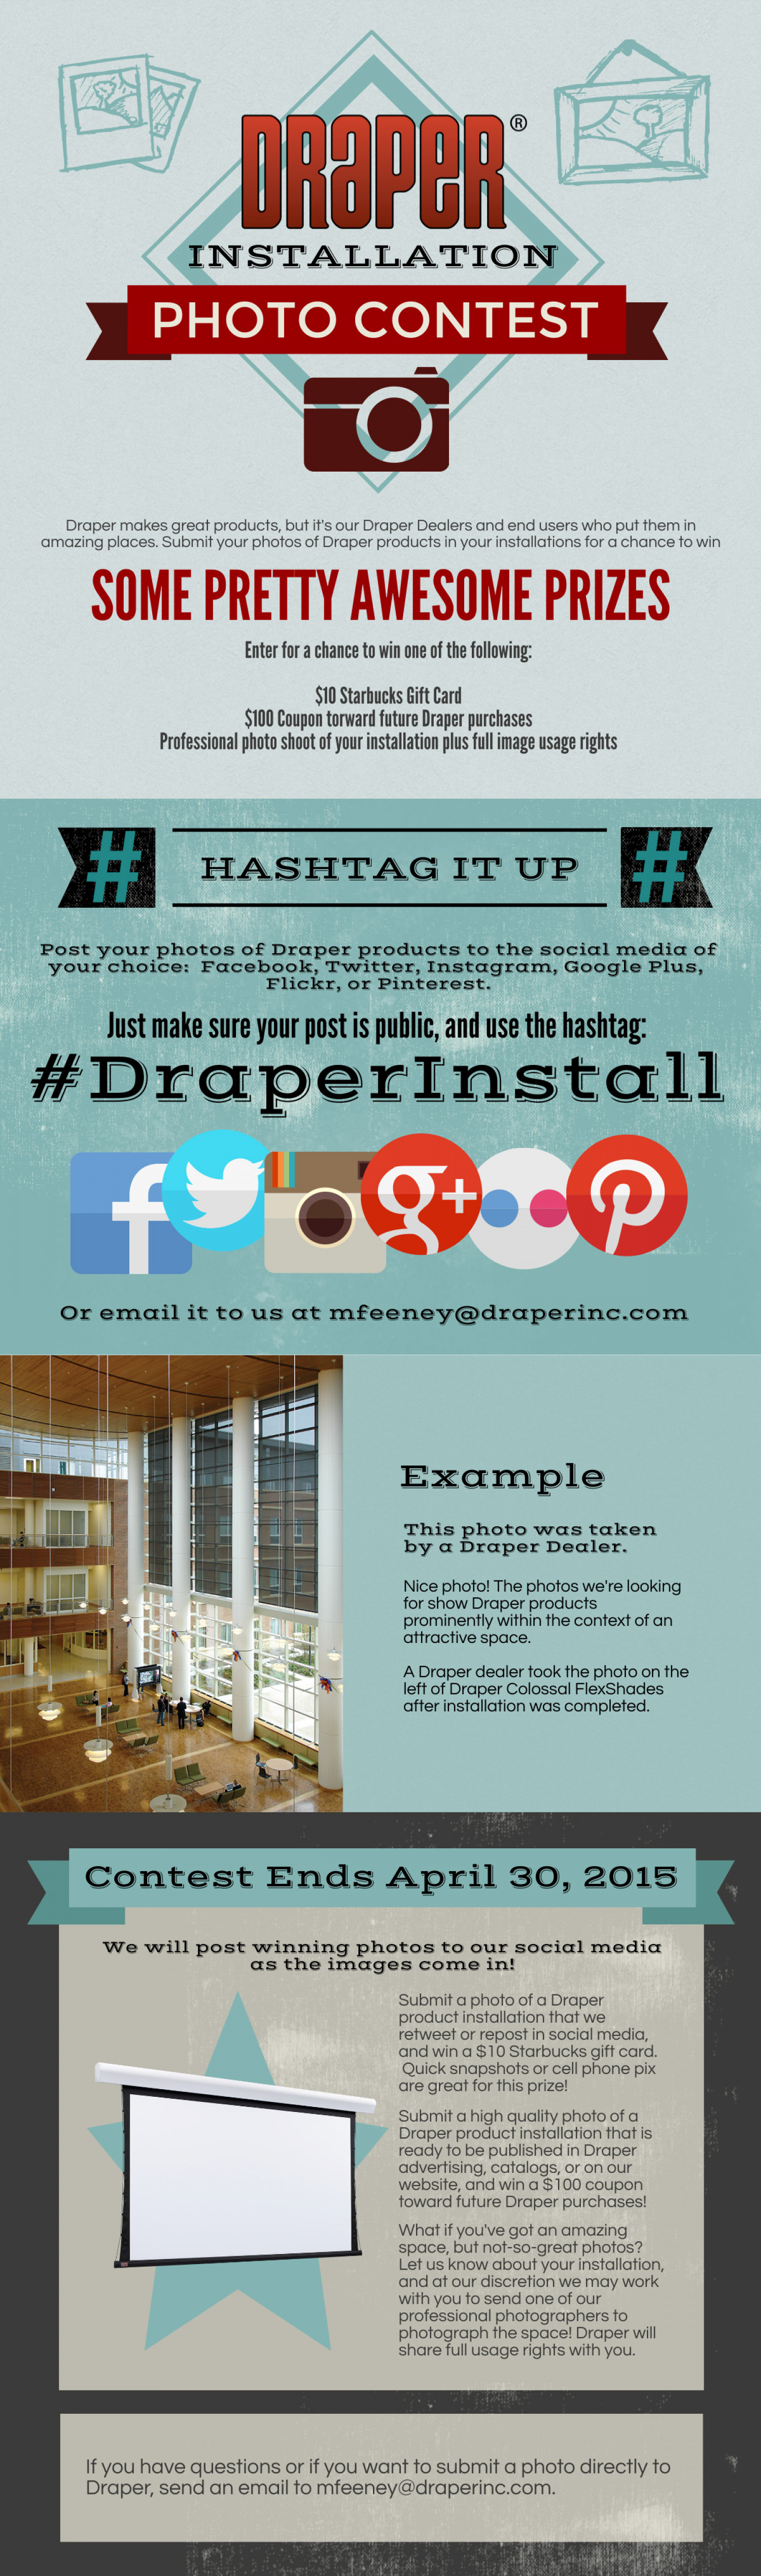 #DraperInstall Social Media Photo Contest Infographic